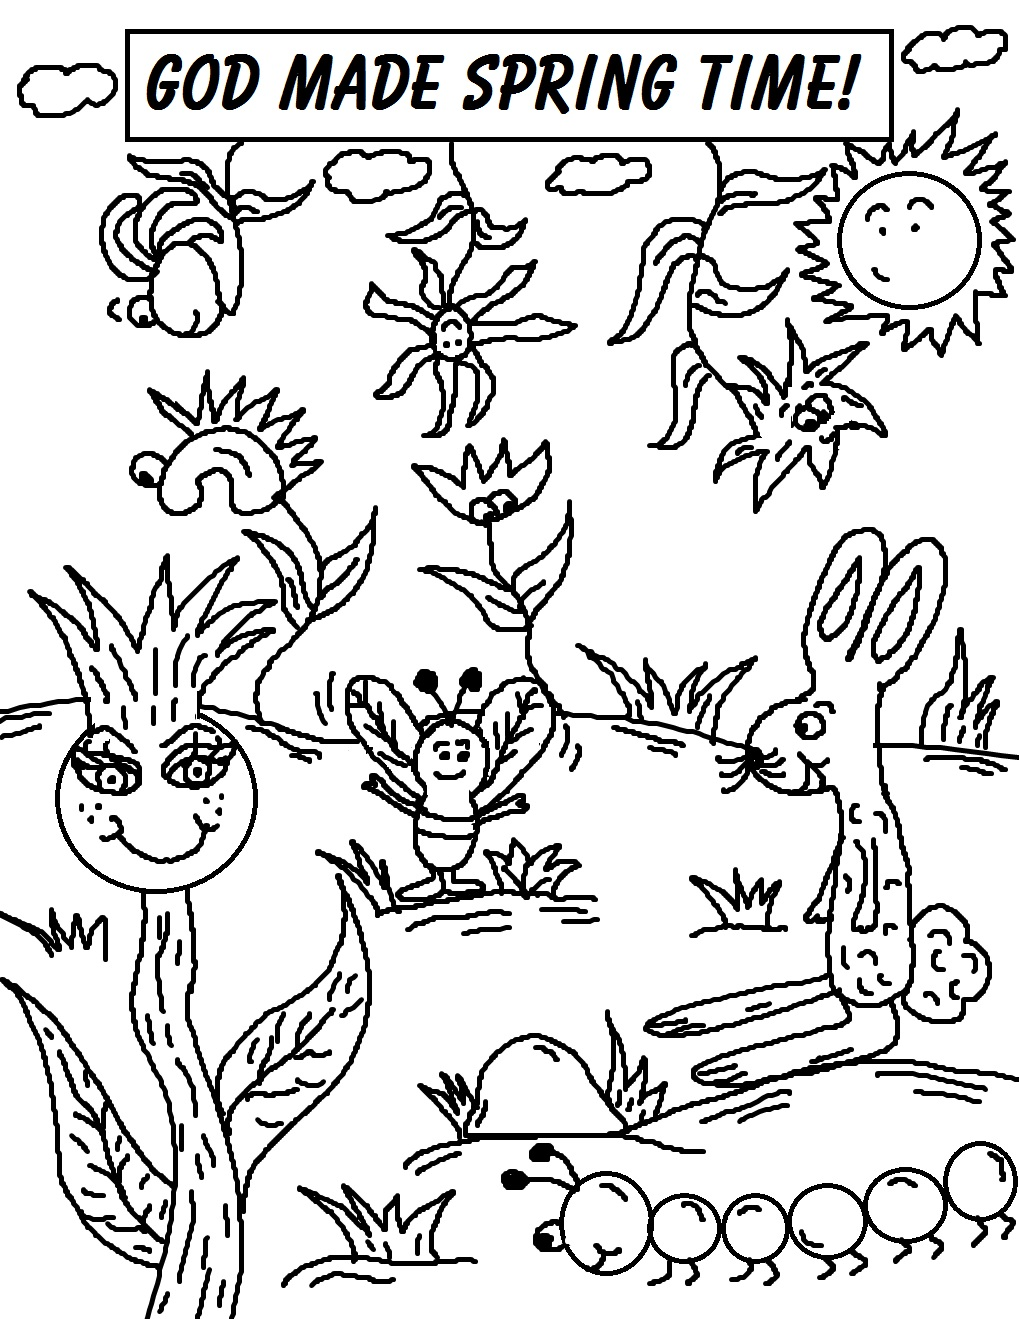 1019x1319 God Made Spring Coloring Page